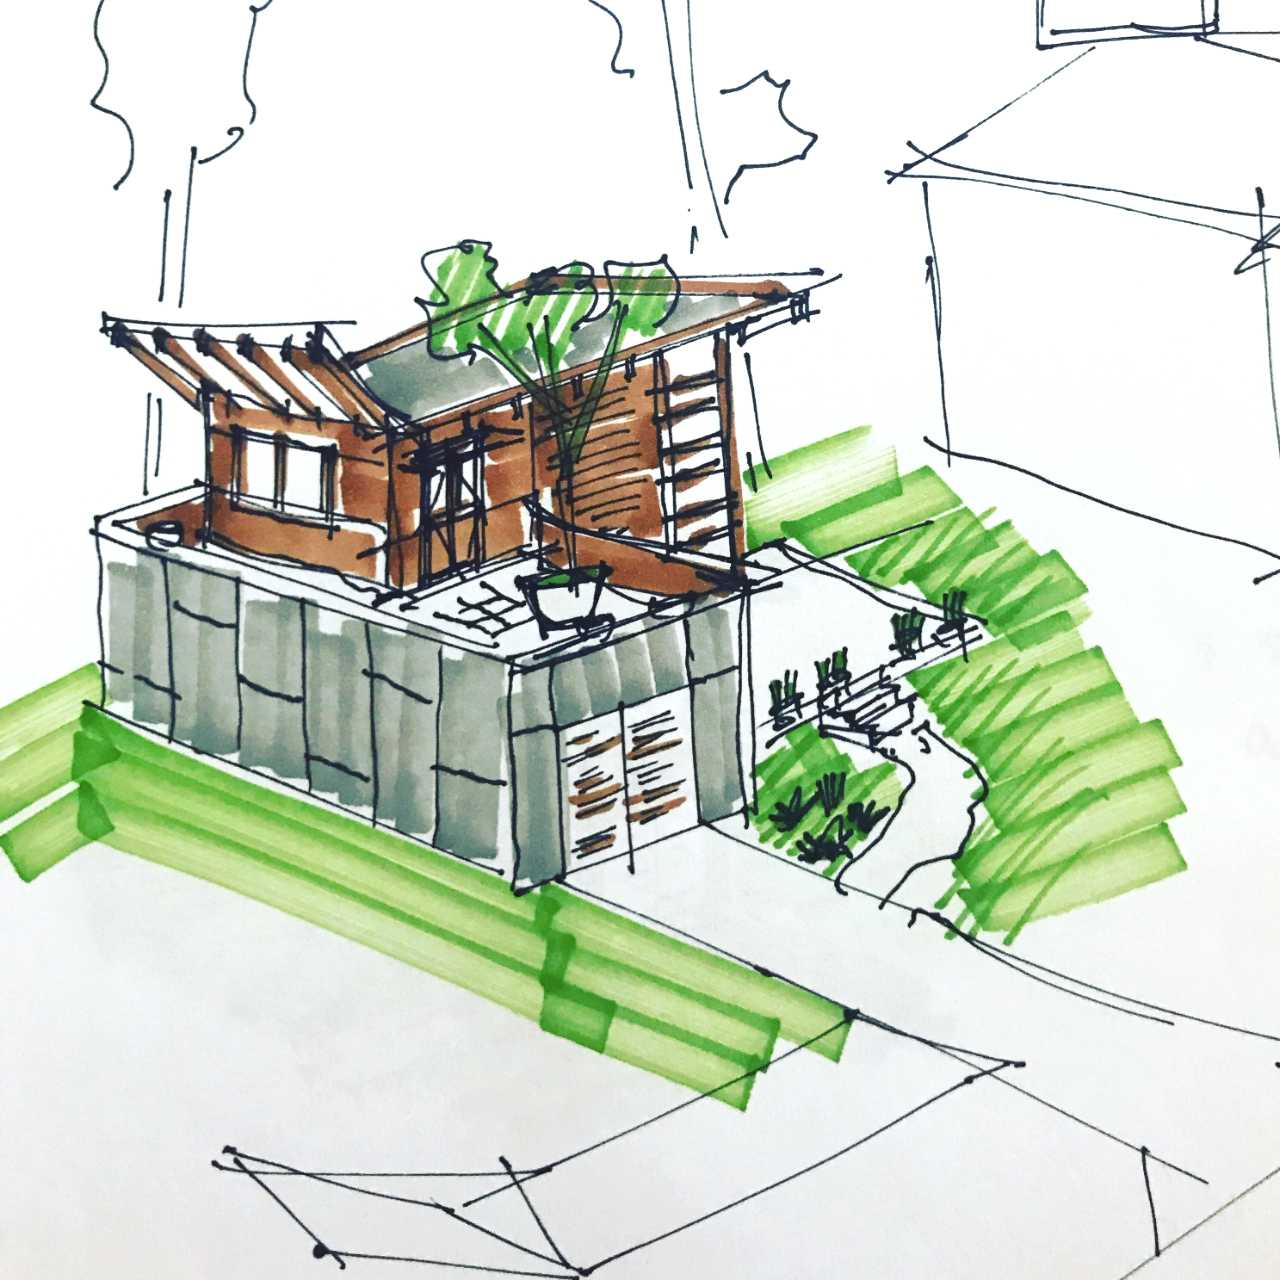 Guide to Planning your prefab Backyard Cottage in Seattle - New rules for backyard cottages are taking effect in Seattle on August 8th, opening up a new opportunity for homeowners to leverage the development potential of their lots, while helping to ease Seattle's housing crisis. This guide is a rigorous introduction to the complex feasibility issues of designing a prefab (or site built) backyard cottage. This should allow you to grade your lot and understand the issues that will prepare you to discuss the project with your architect.by Brett Holverstott, AIA